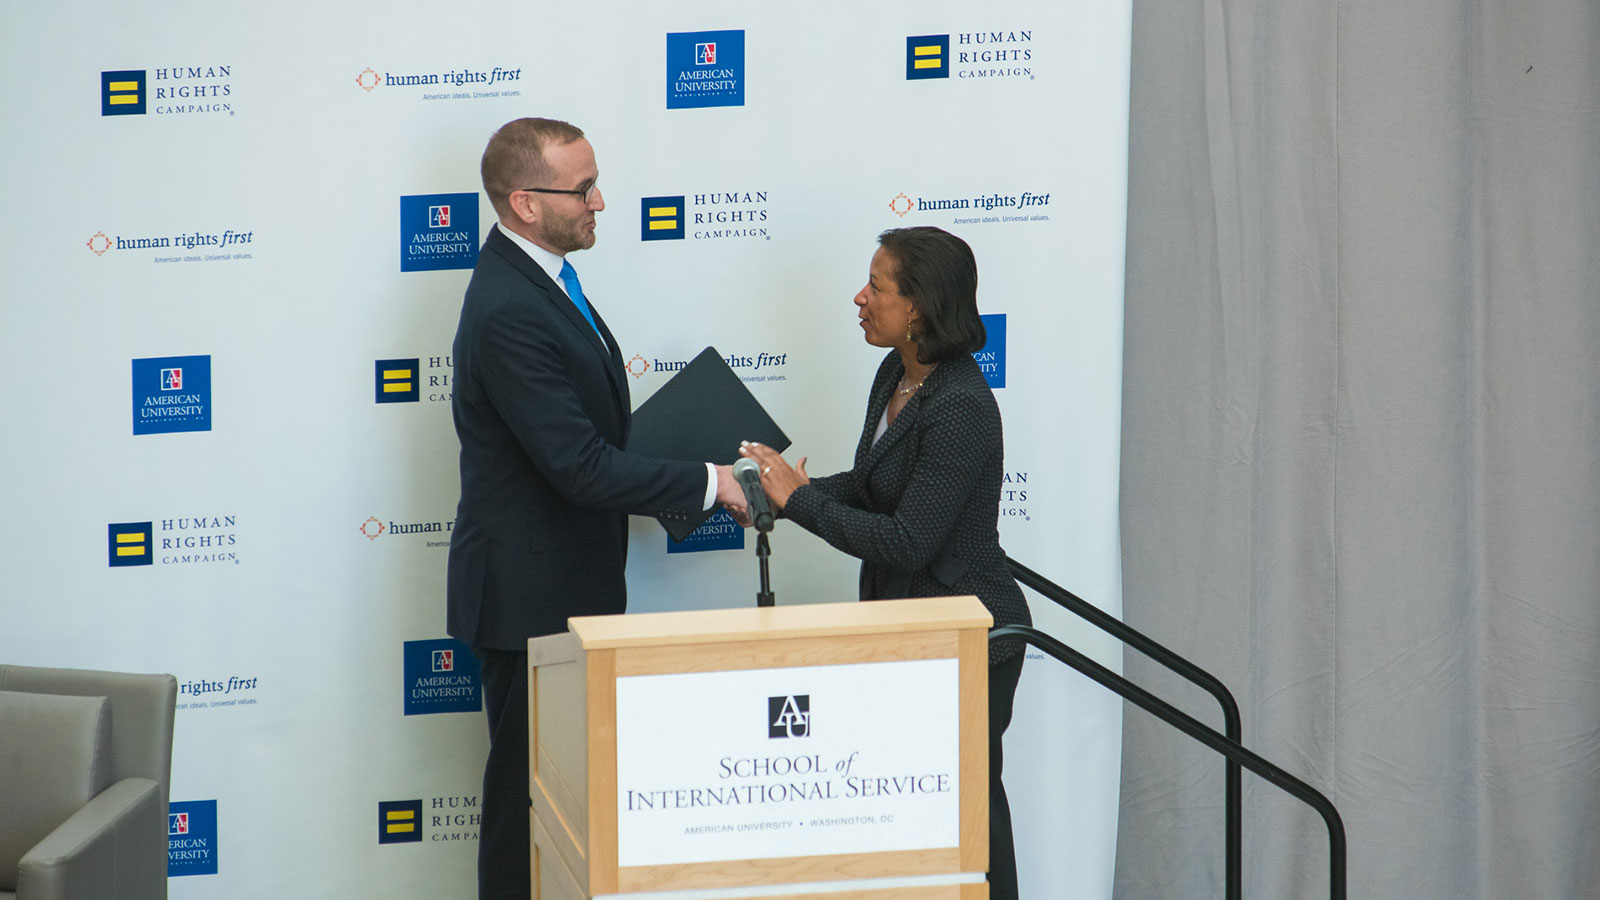 HRC President Chad Griffin Introduces Ambassador Susan Rice Ahead of  Historic Speech on LGBTQ Rights 7a164a8cb